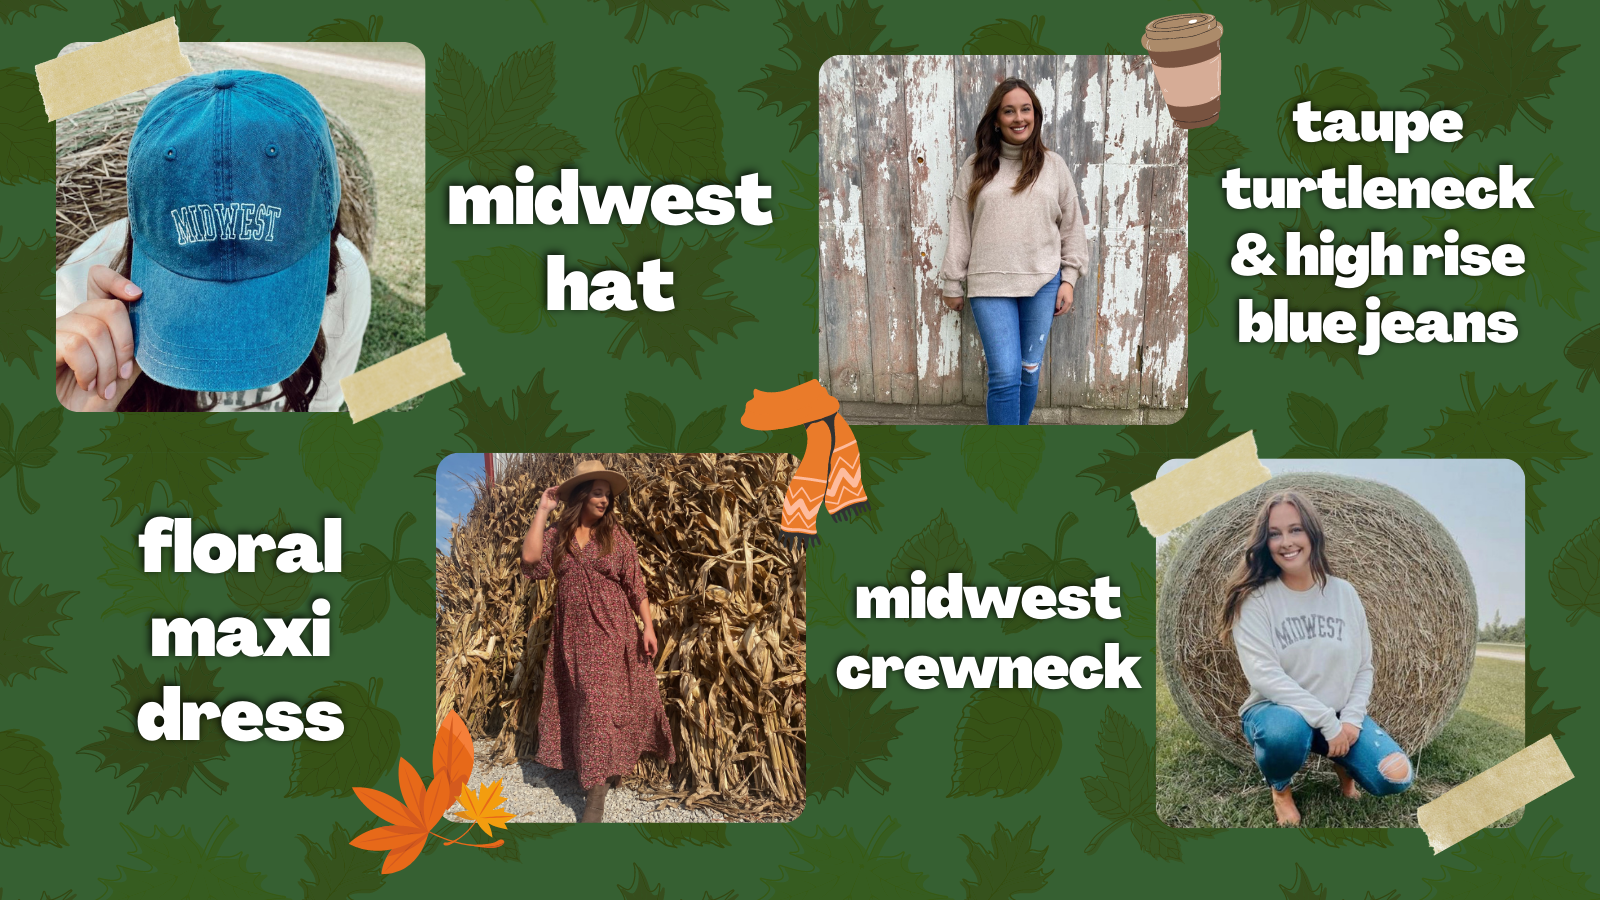 a collage of clothing items. floral maxi dress, midwest hat, midwest crewneck and taupe turtleneck & high rise blue jeans